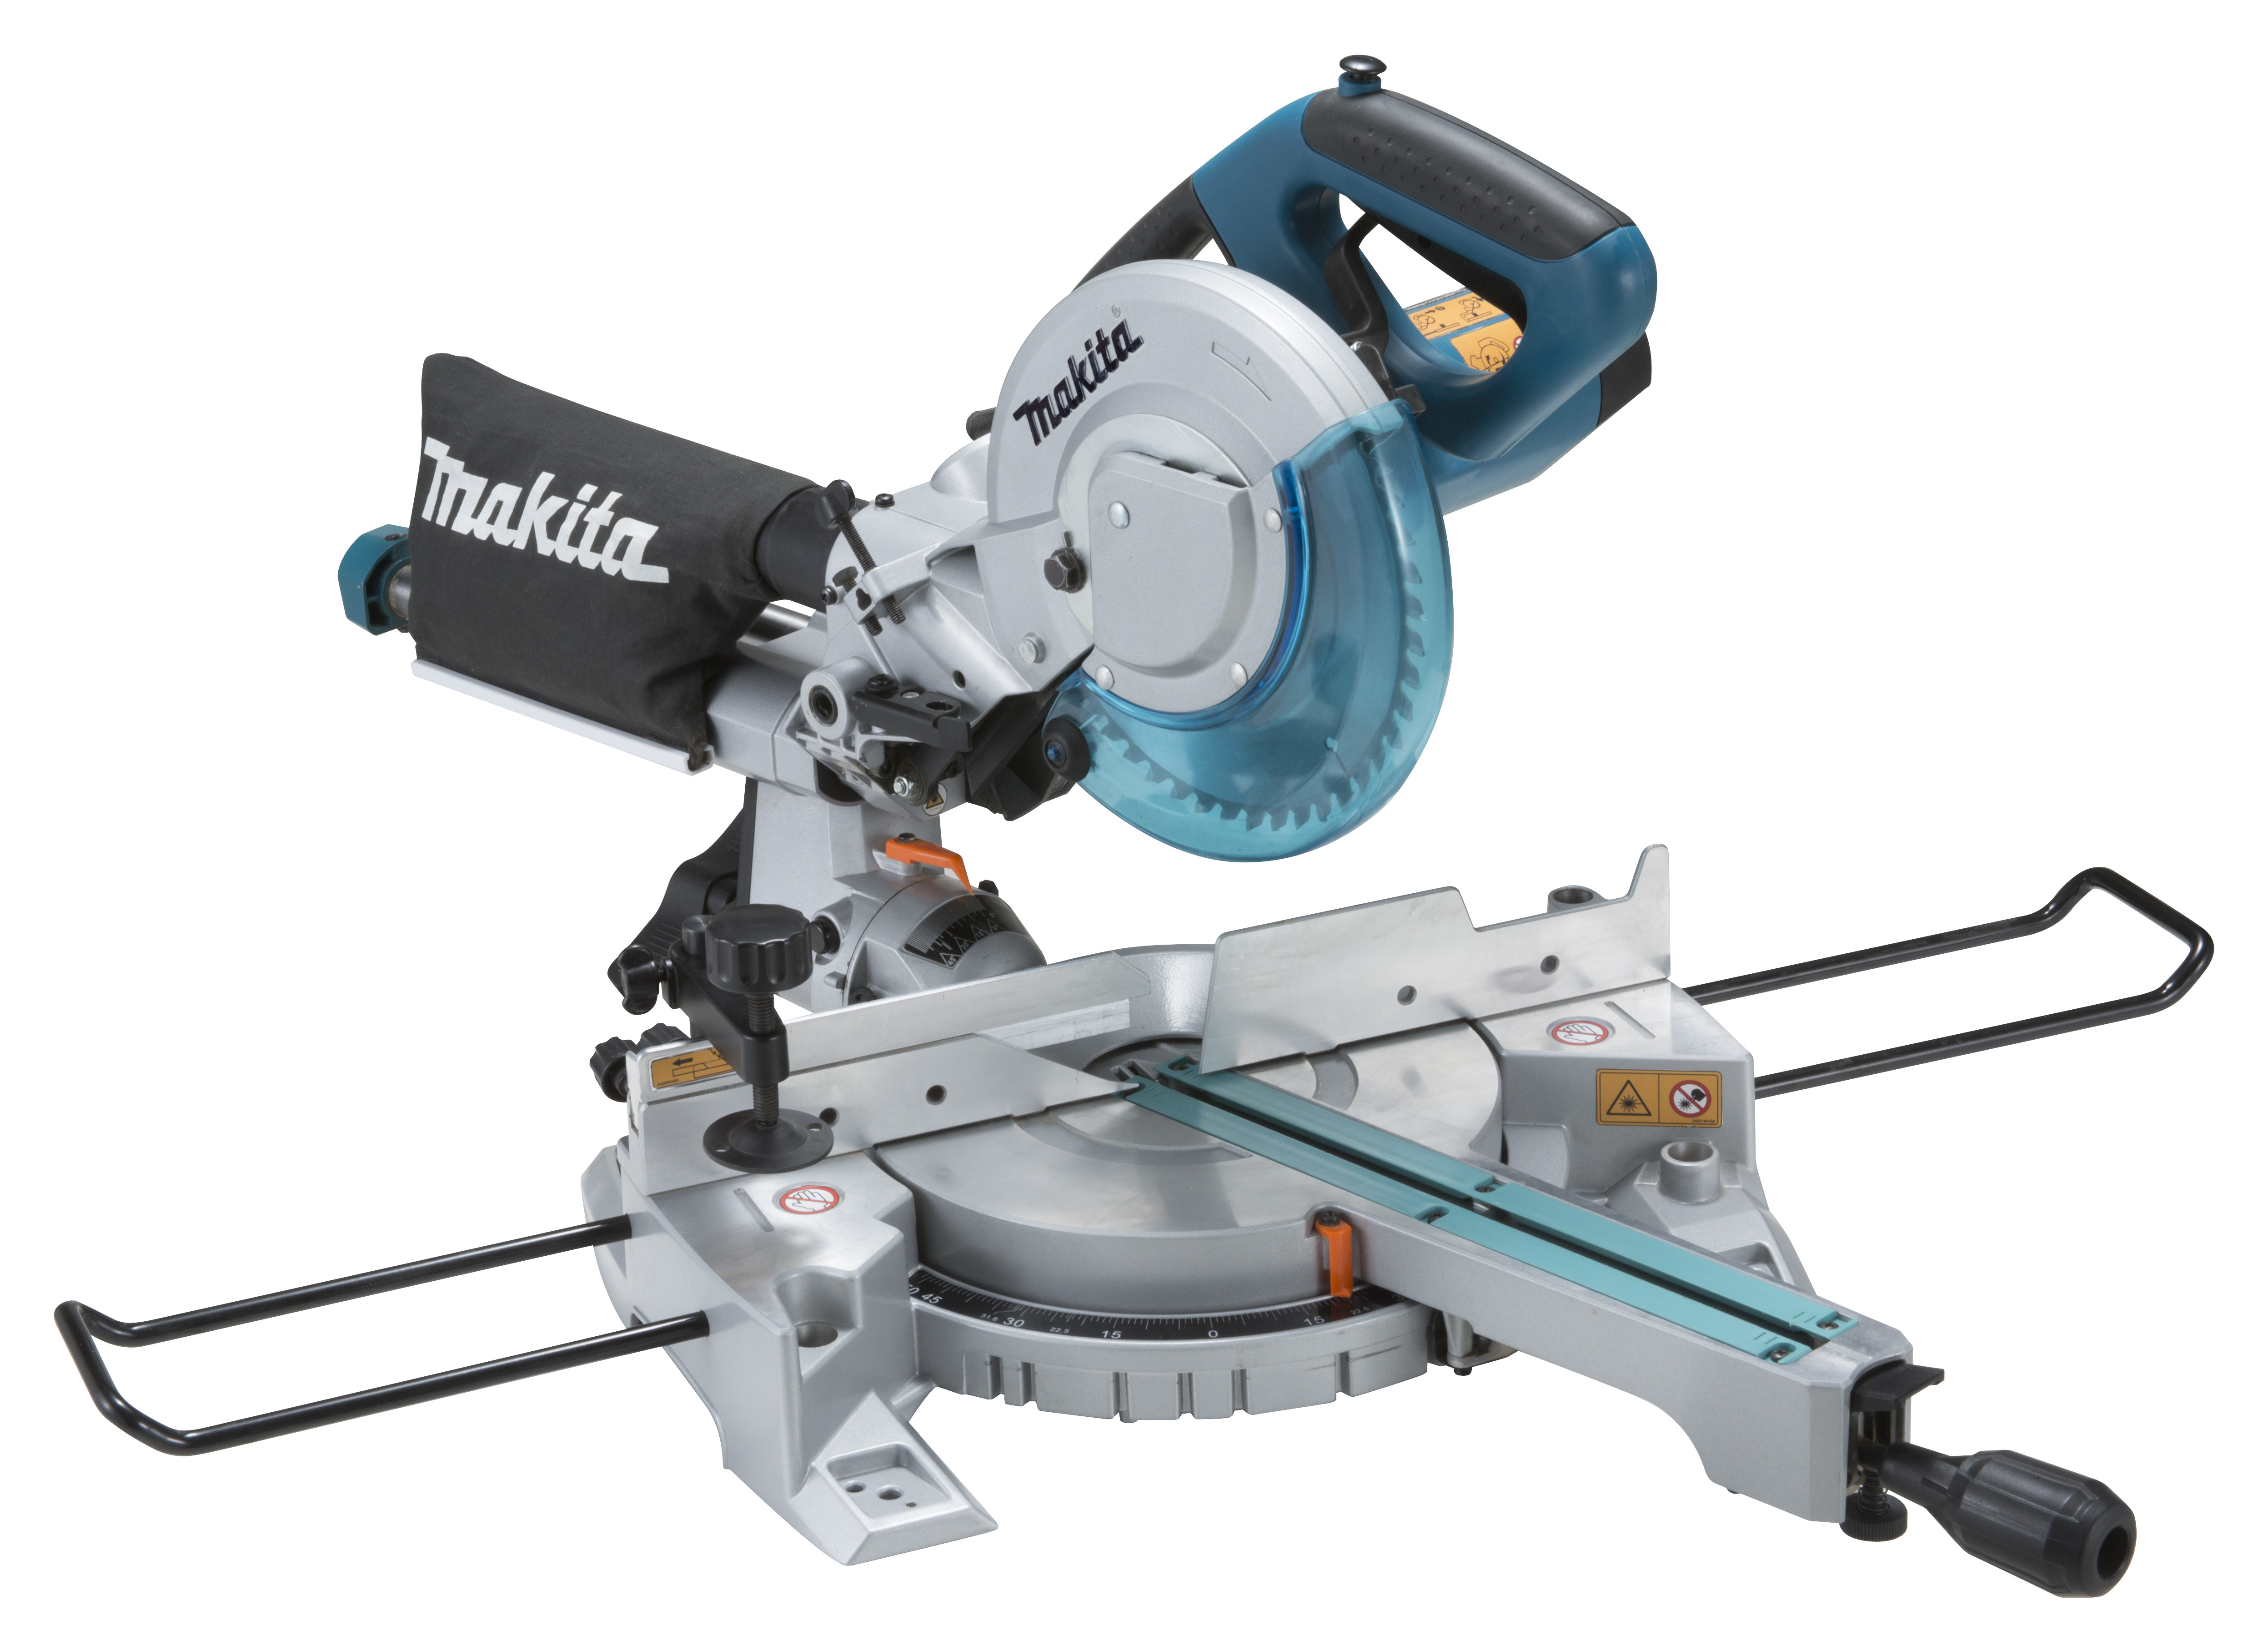 Makita Power Tools South Africa - Compound Mitre Saws